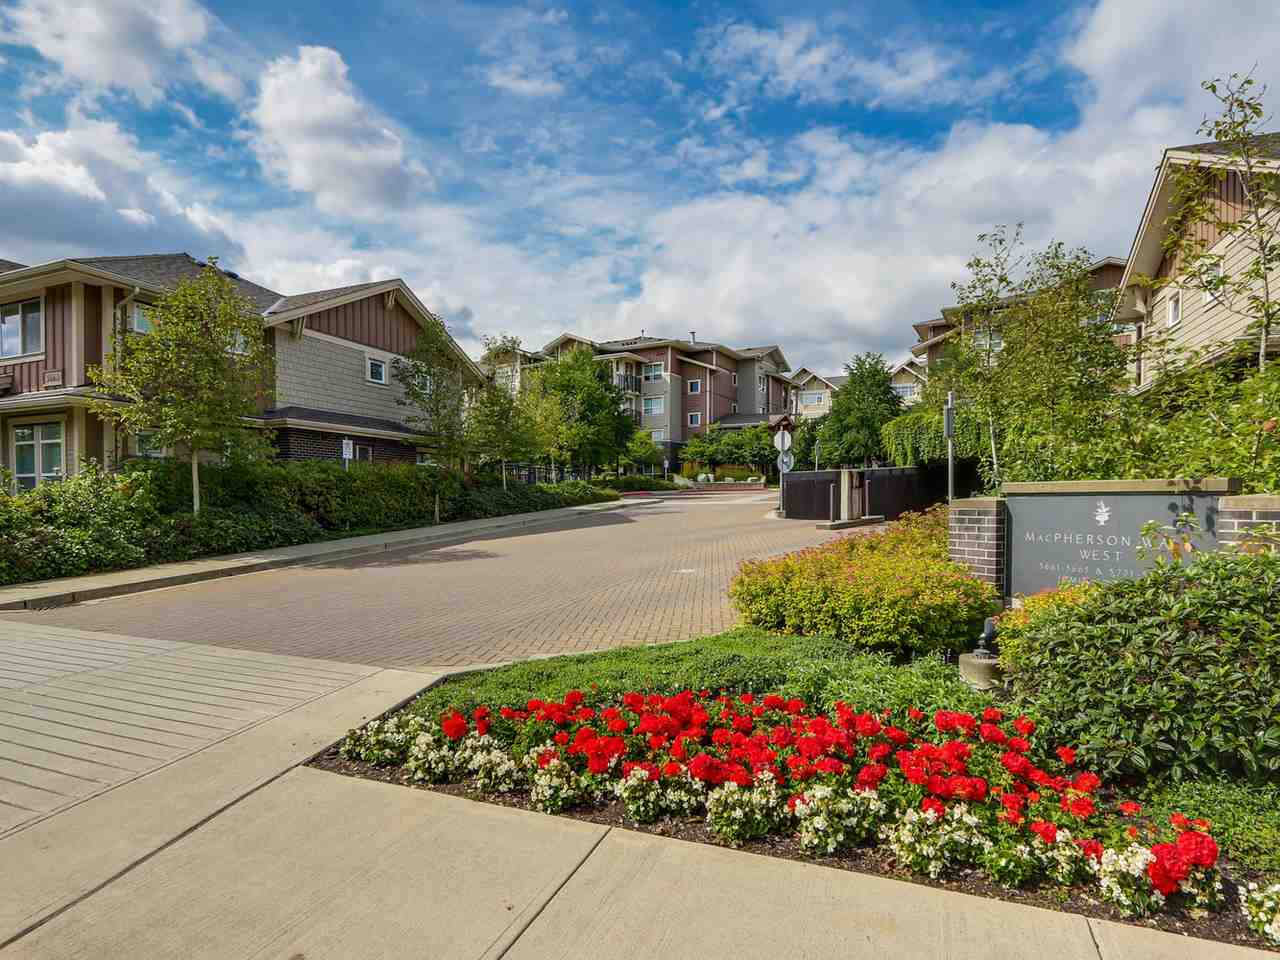 "Main Photo: 402 5665 IRMIN Street in Burnaby: Metrotown Condo for sale in ""MACOHERSON WEST"" (Burnaby South)  : MLS® # R2089049"